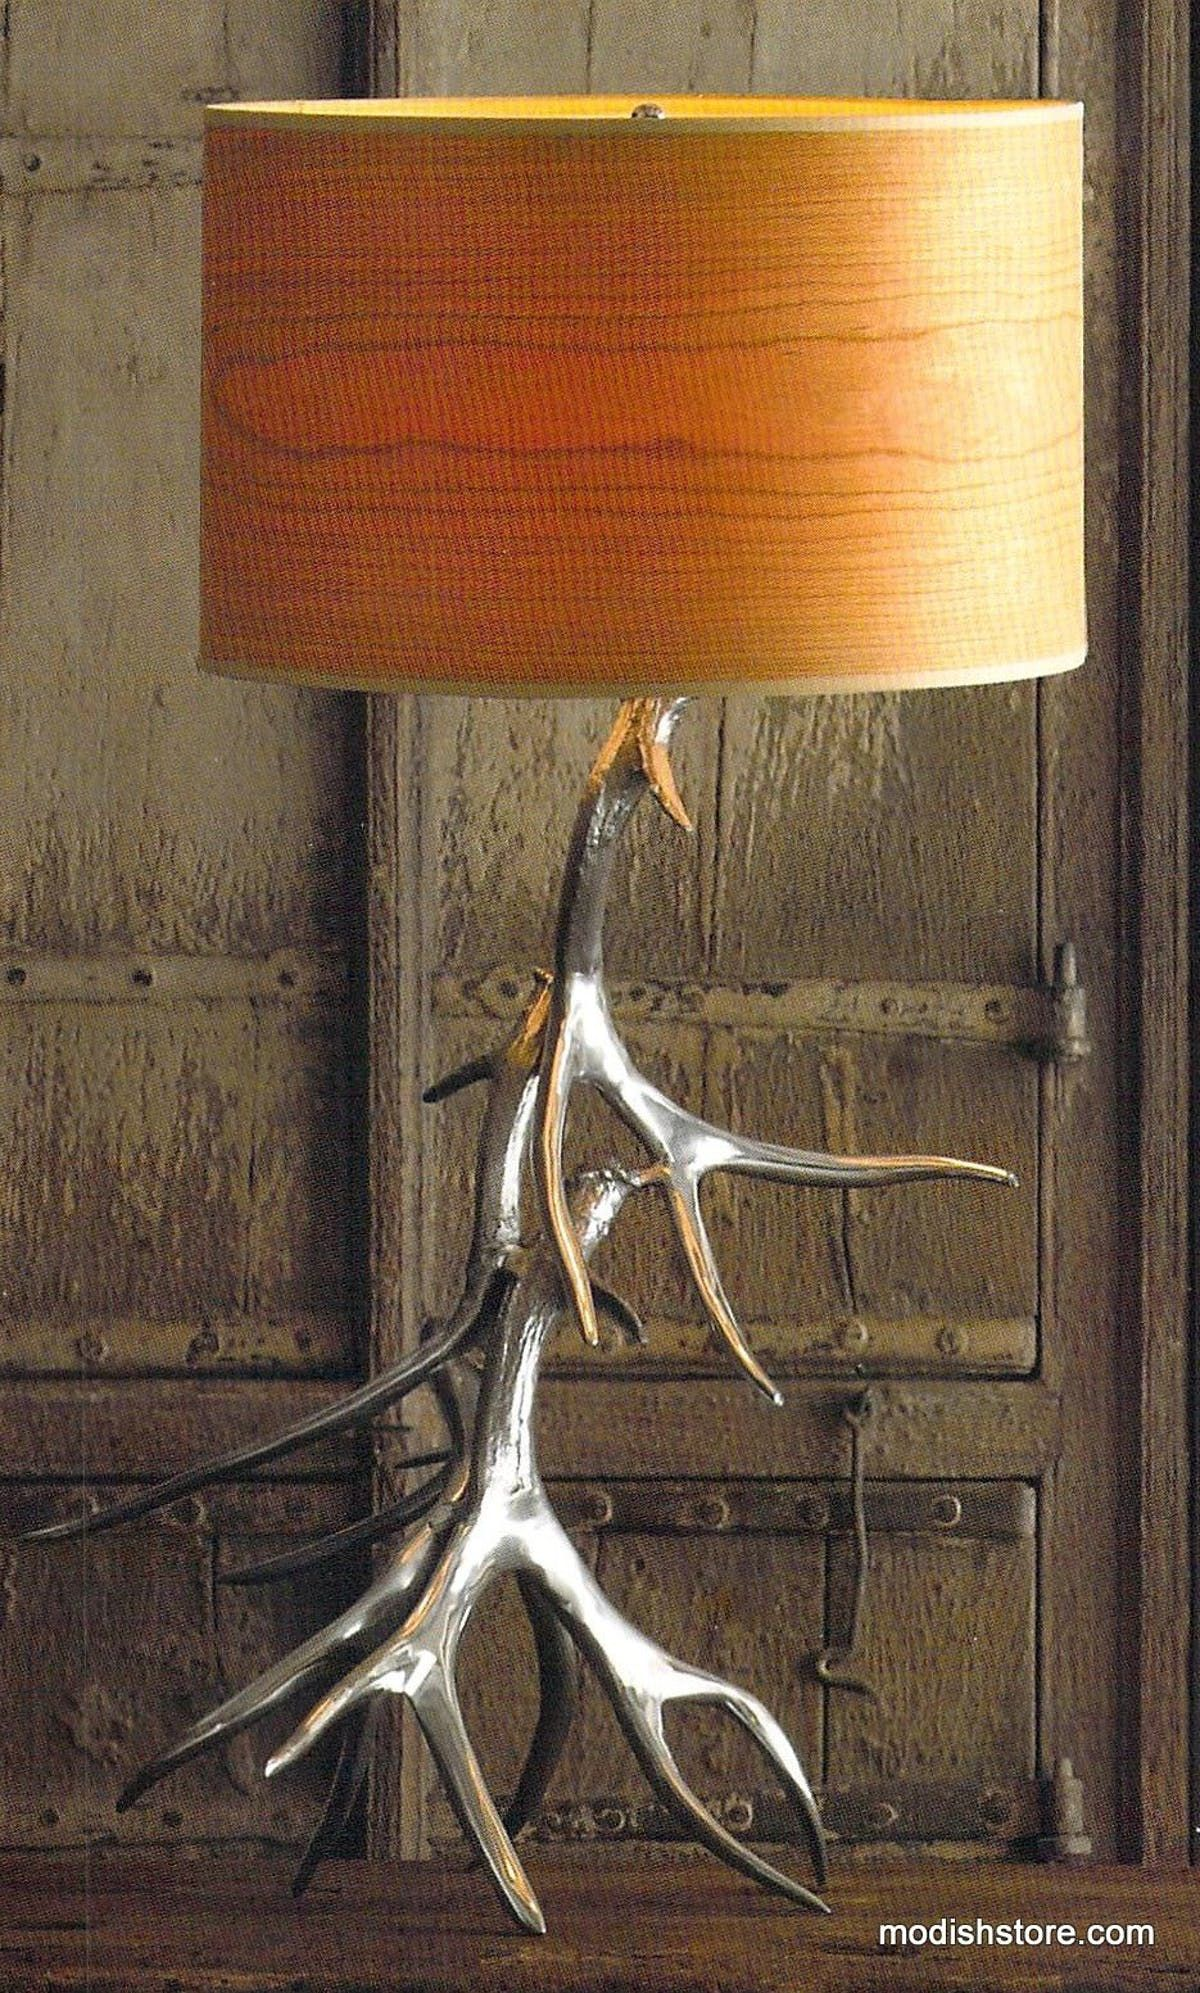 Roost Aluminum Antler Lamp Base & Wood Veneer Shade